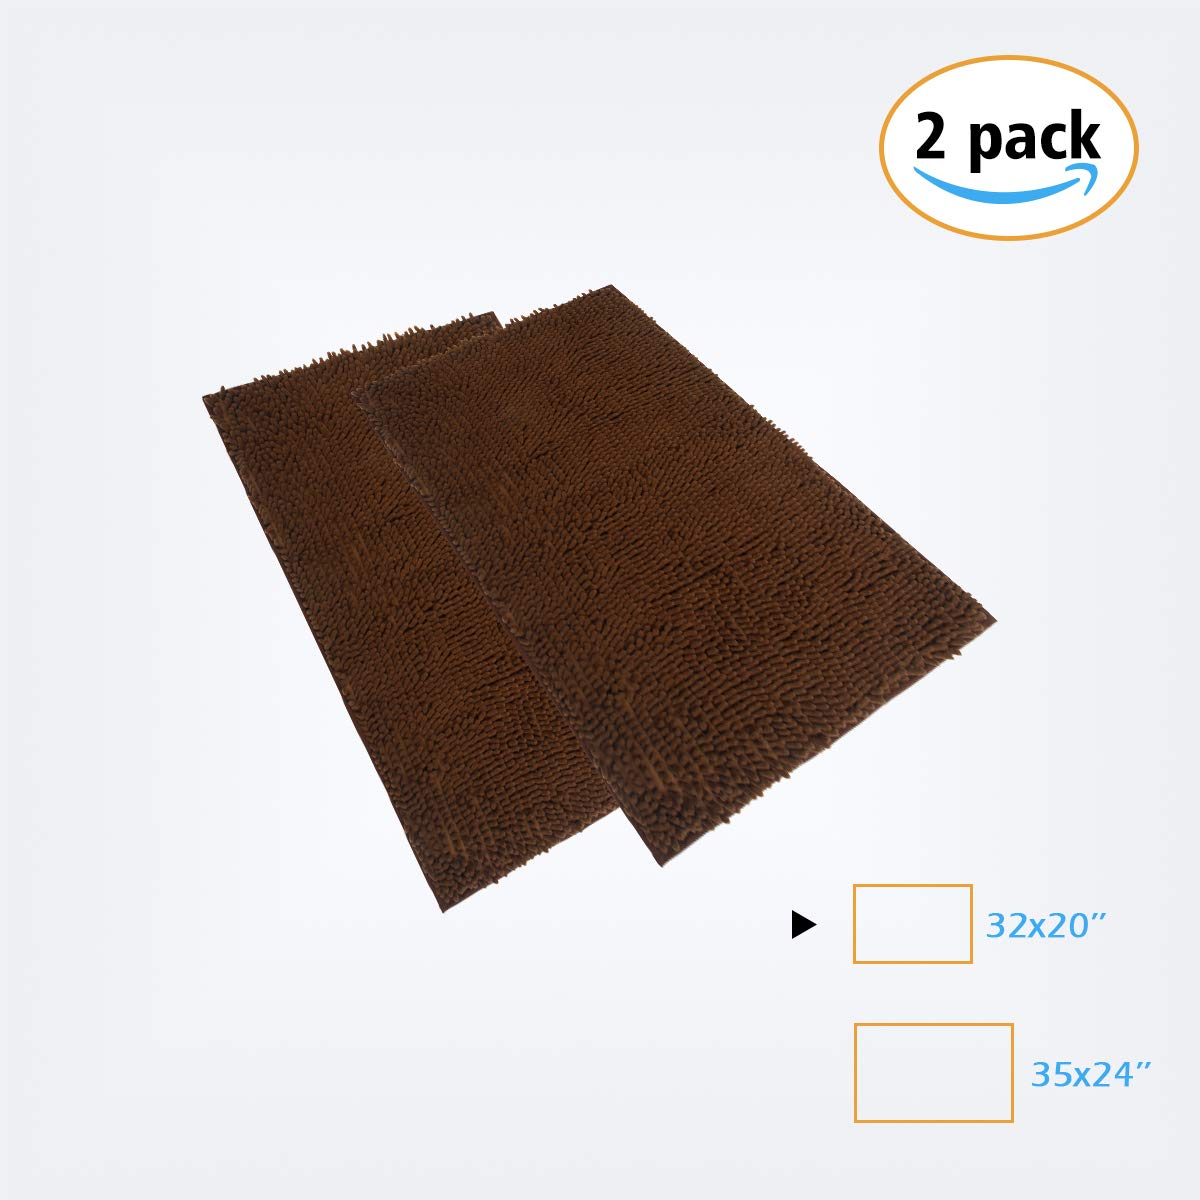 YOUKADA 2PCS Chenille Bath Mat for kids Bedroom Mat (32 x 20), Extra Soft and Absorbent Floor Mat Rugs, Machine Wash/Dry | Plush Carpet Mats for Tub, Shower, and Bath Room (Brown)